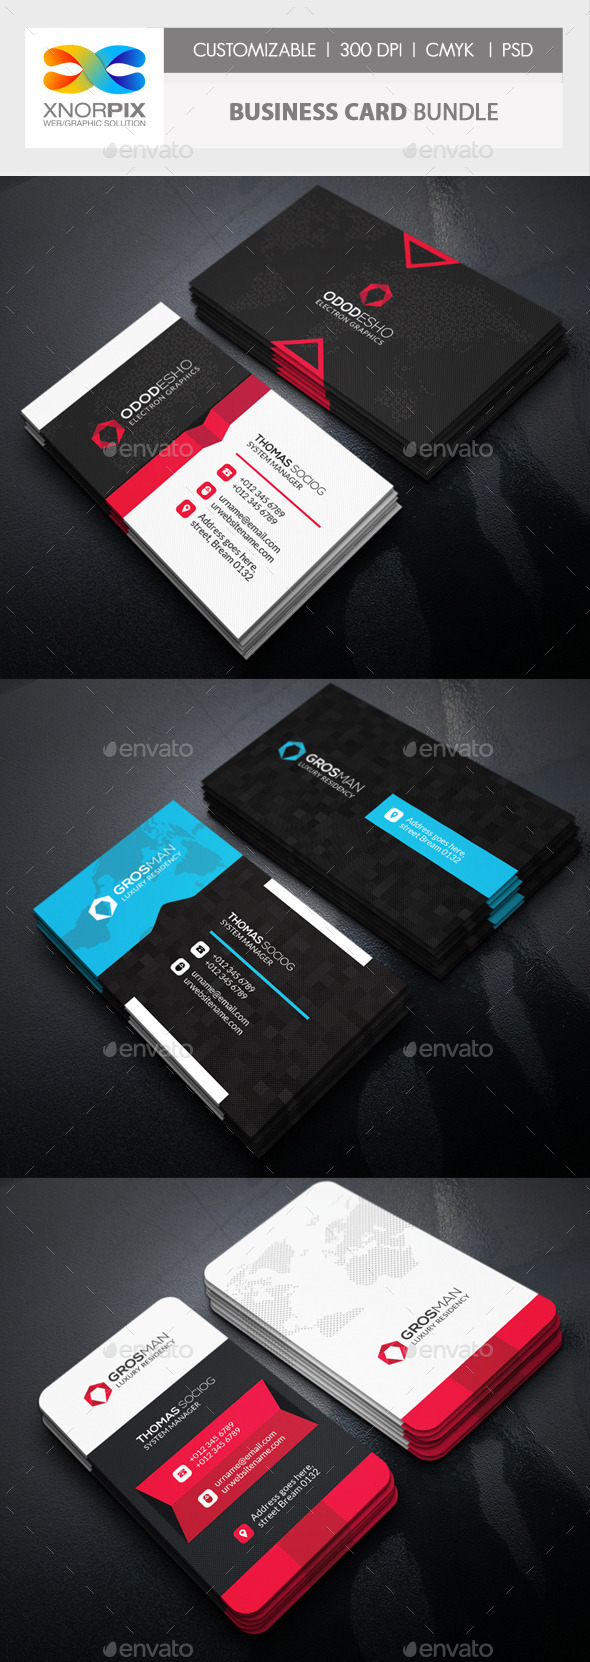 Business Card Bundle 3 in 1-Vol 56 - Corporate Business Cards